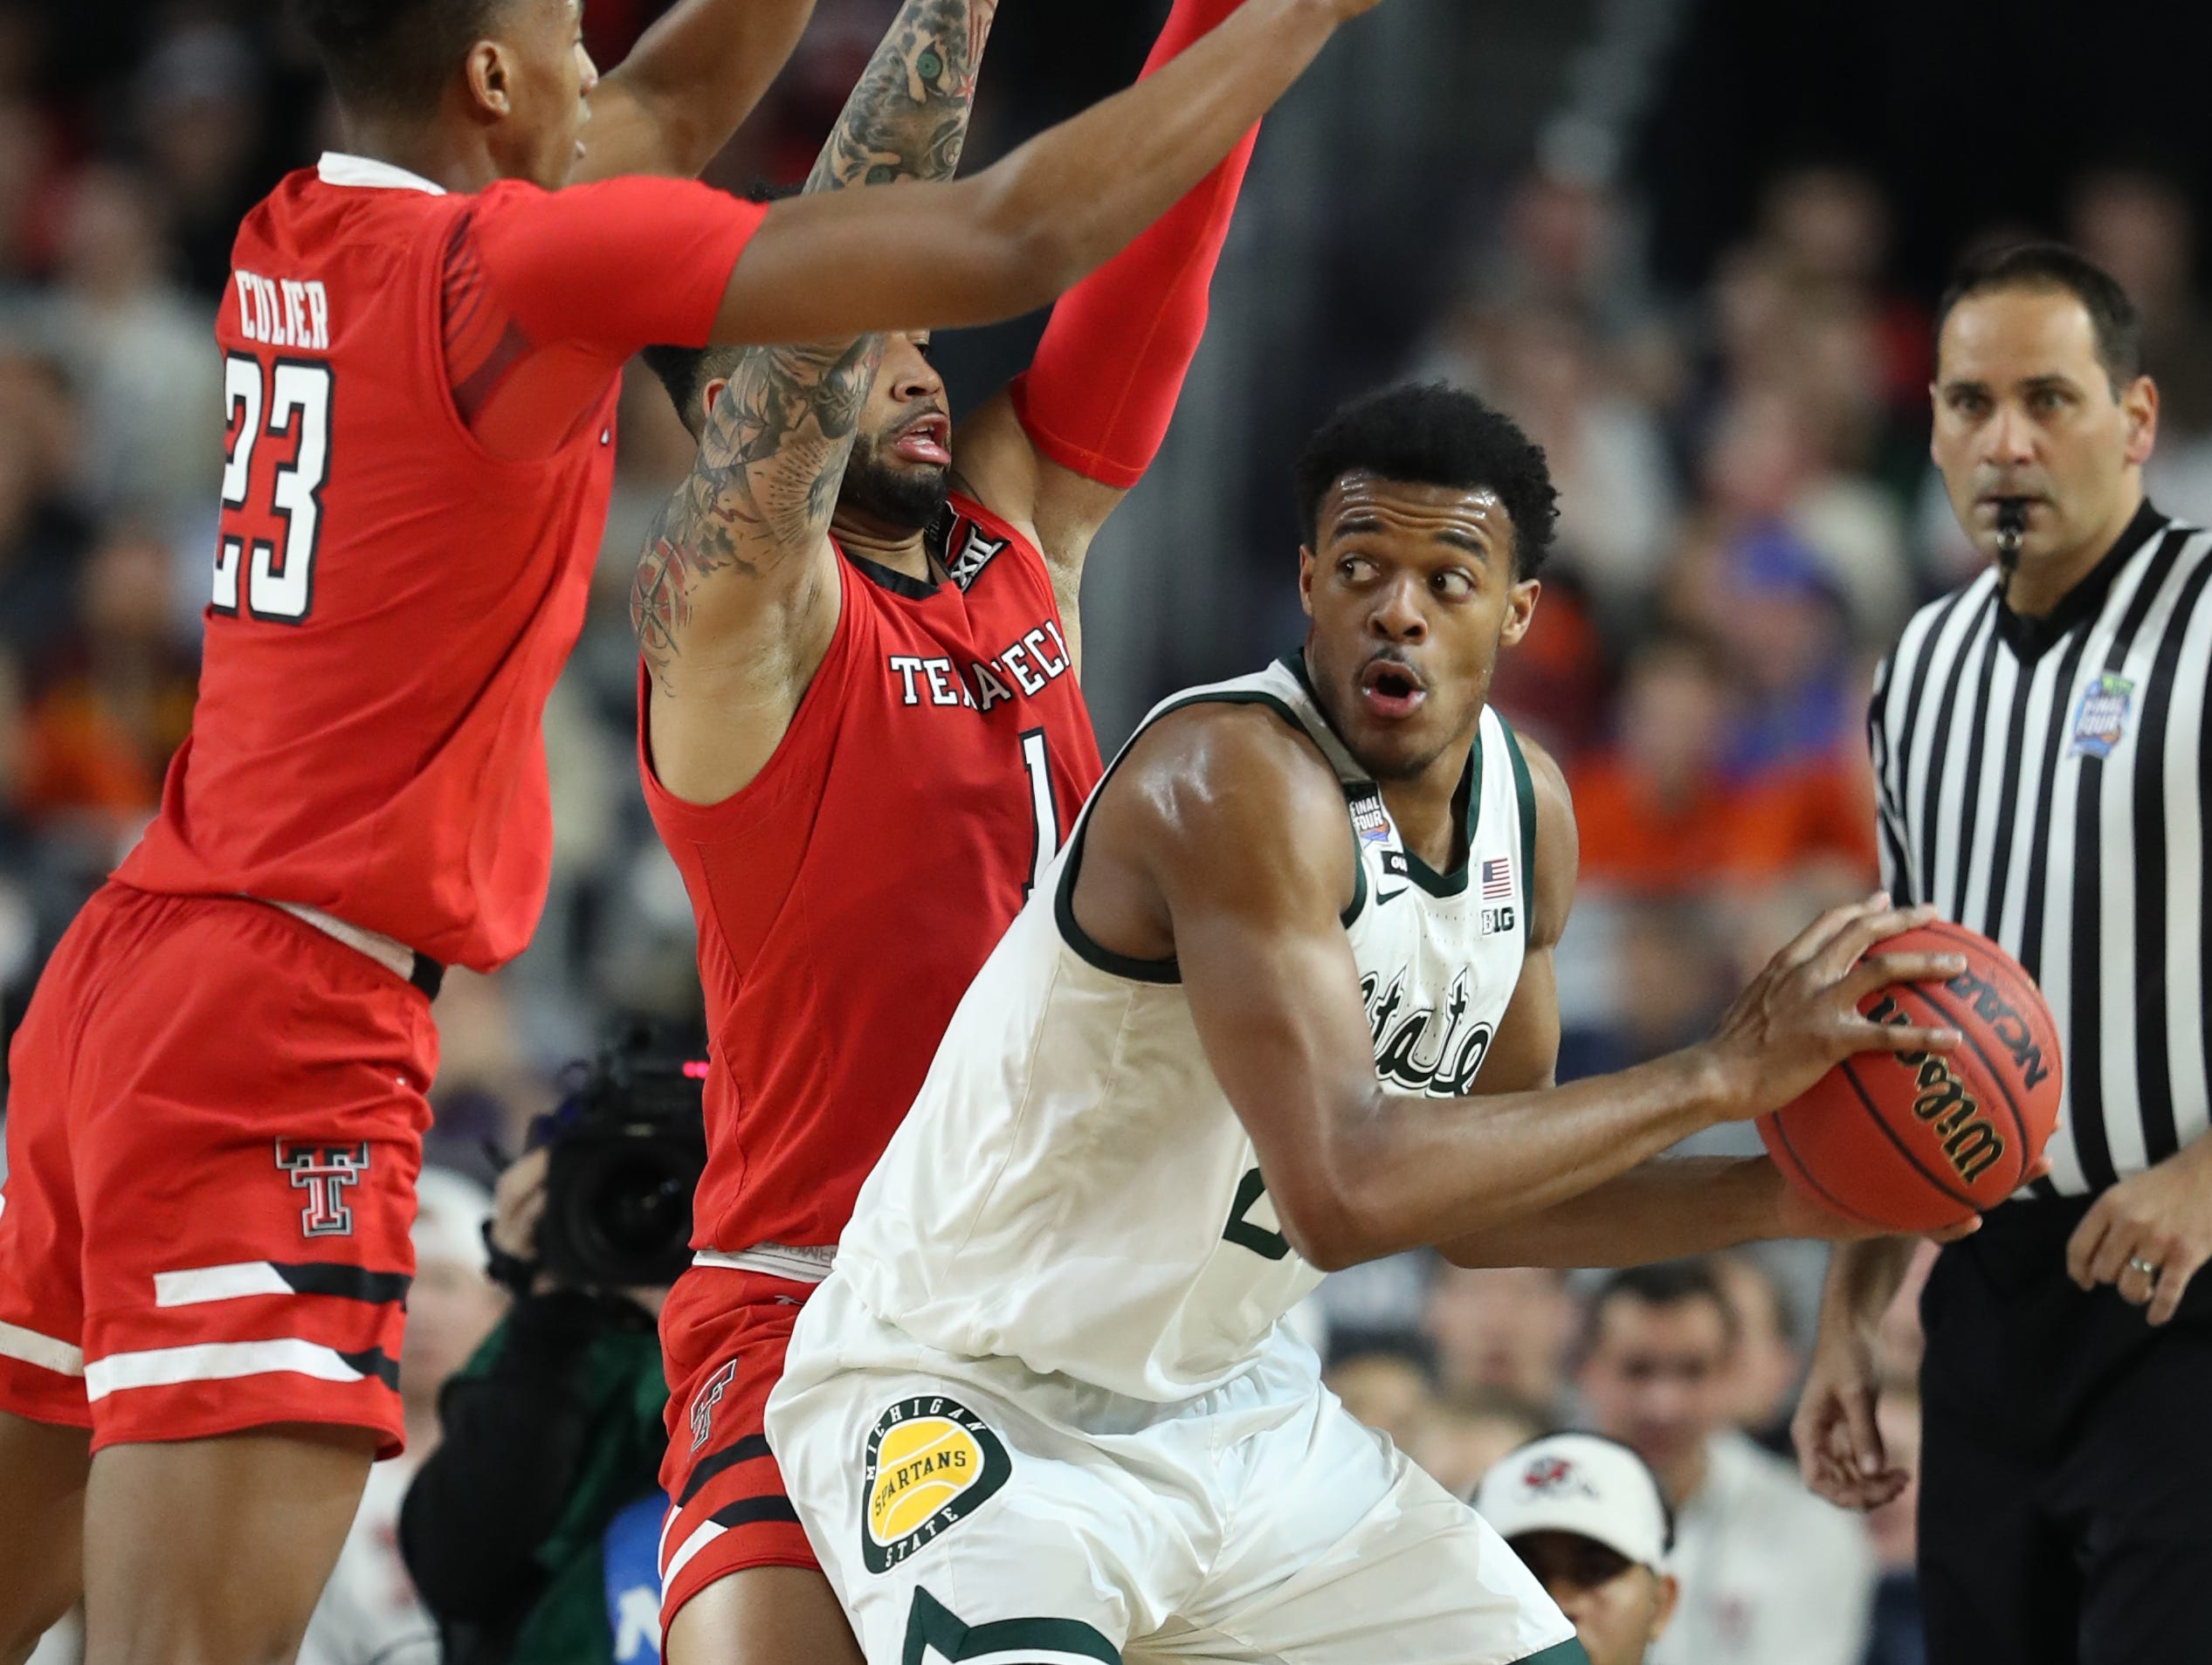 Texas Tech guard Jarrett Culver (23) and guard Brandone Francis (1) guard Michigan State forward Xavier Tillman (23) in the first half of their Final Four game at U.S. Bank Stadium in Minneapolis, Minnesota on Saturday, April 06, 2019.